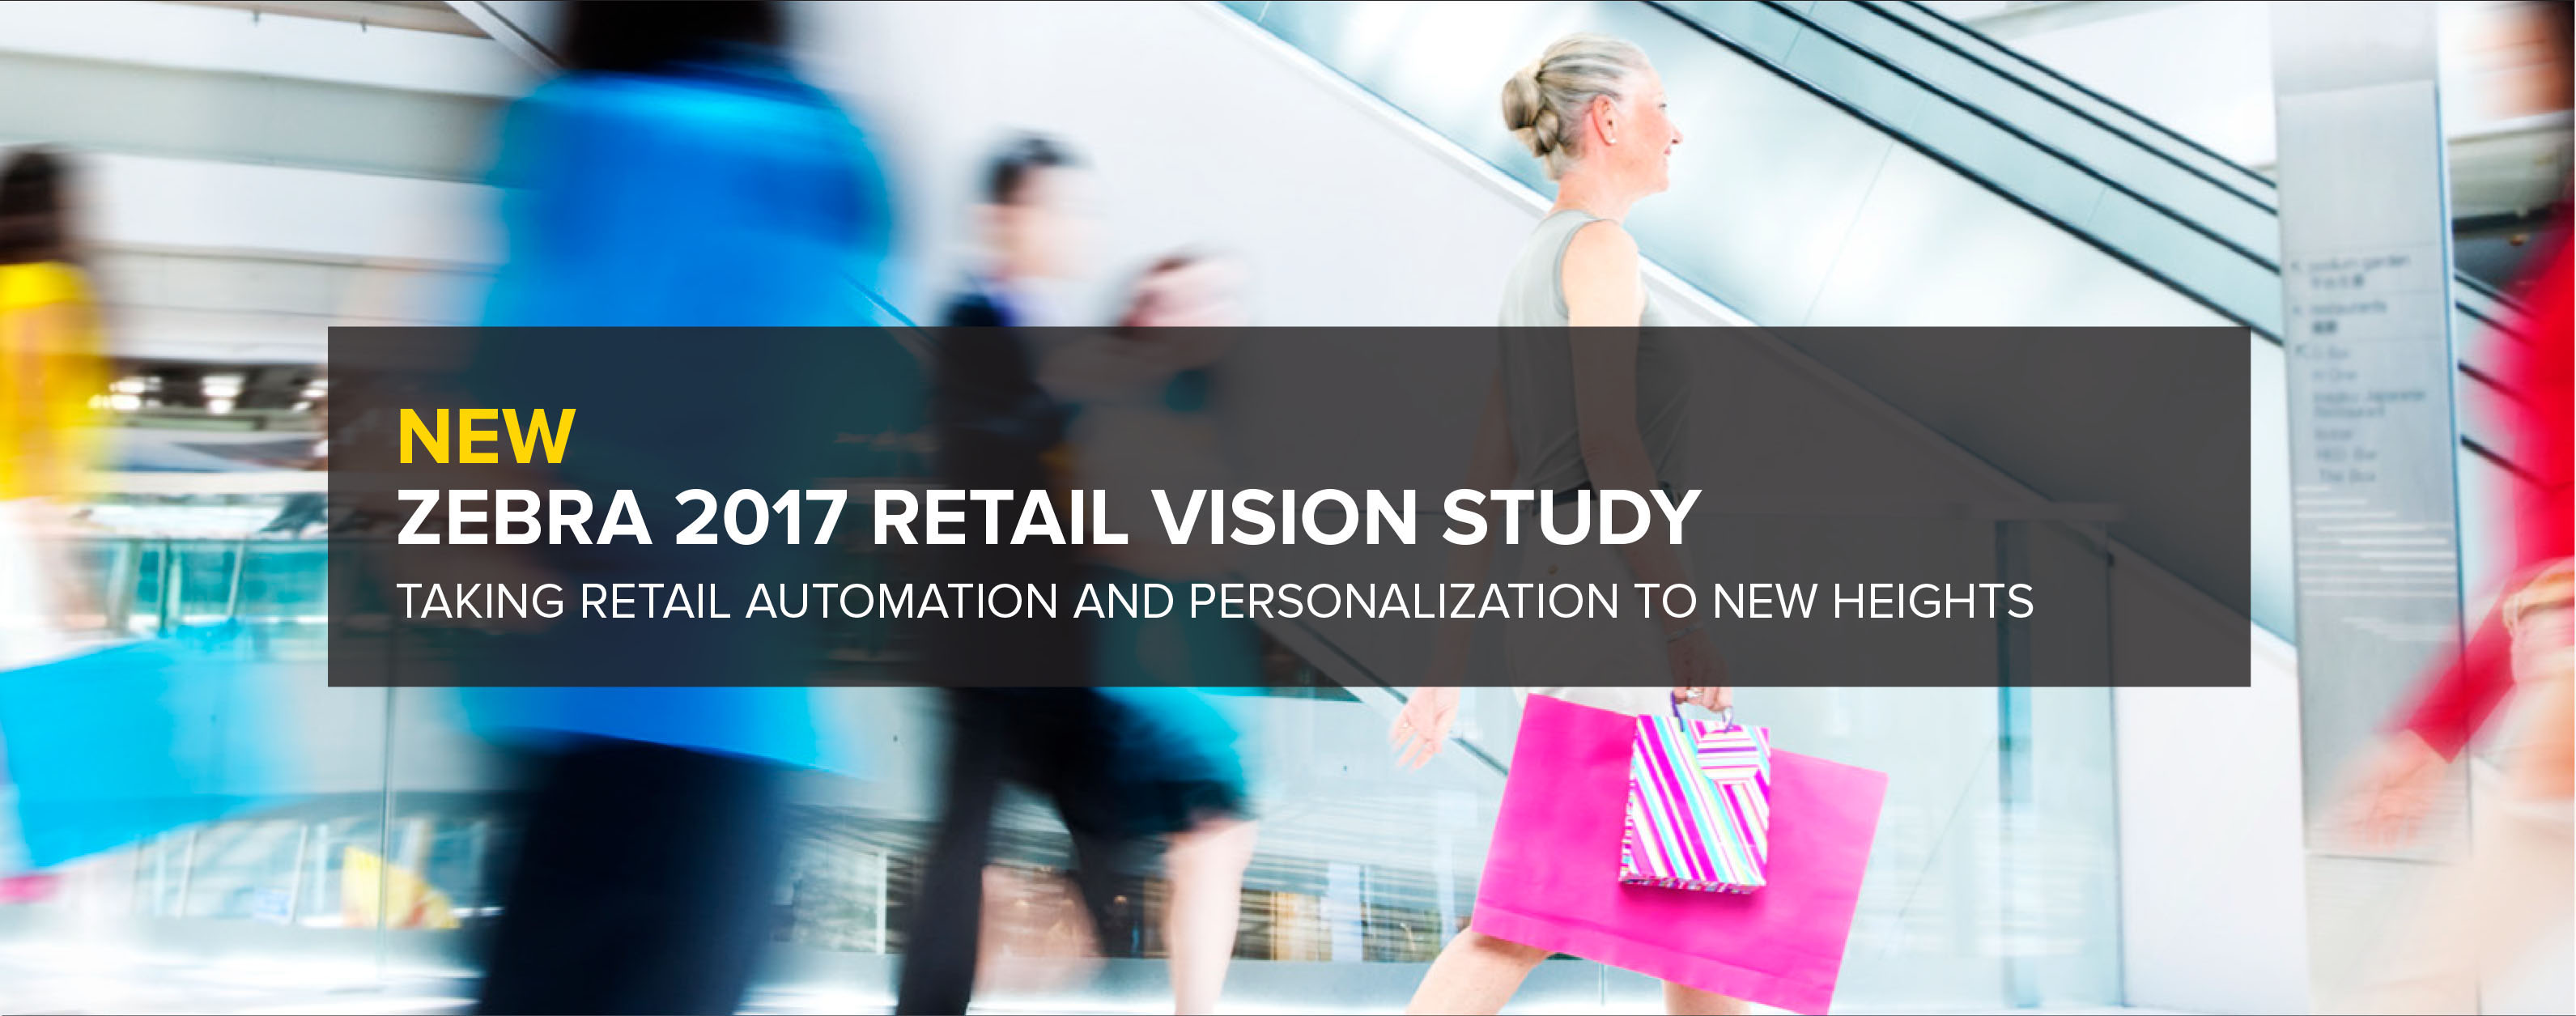 New Zebra 2017 Retail Vision Study – Taking Retail Automation and Personalization to New Heights